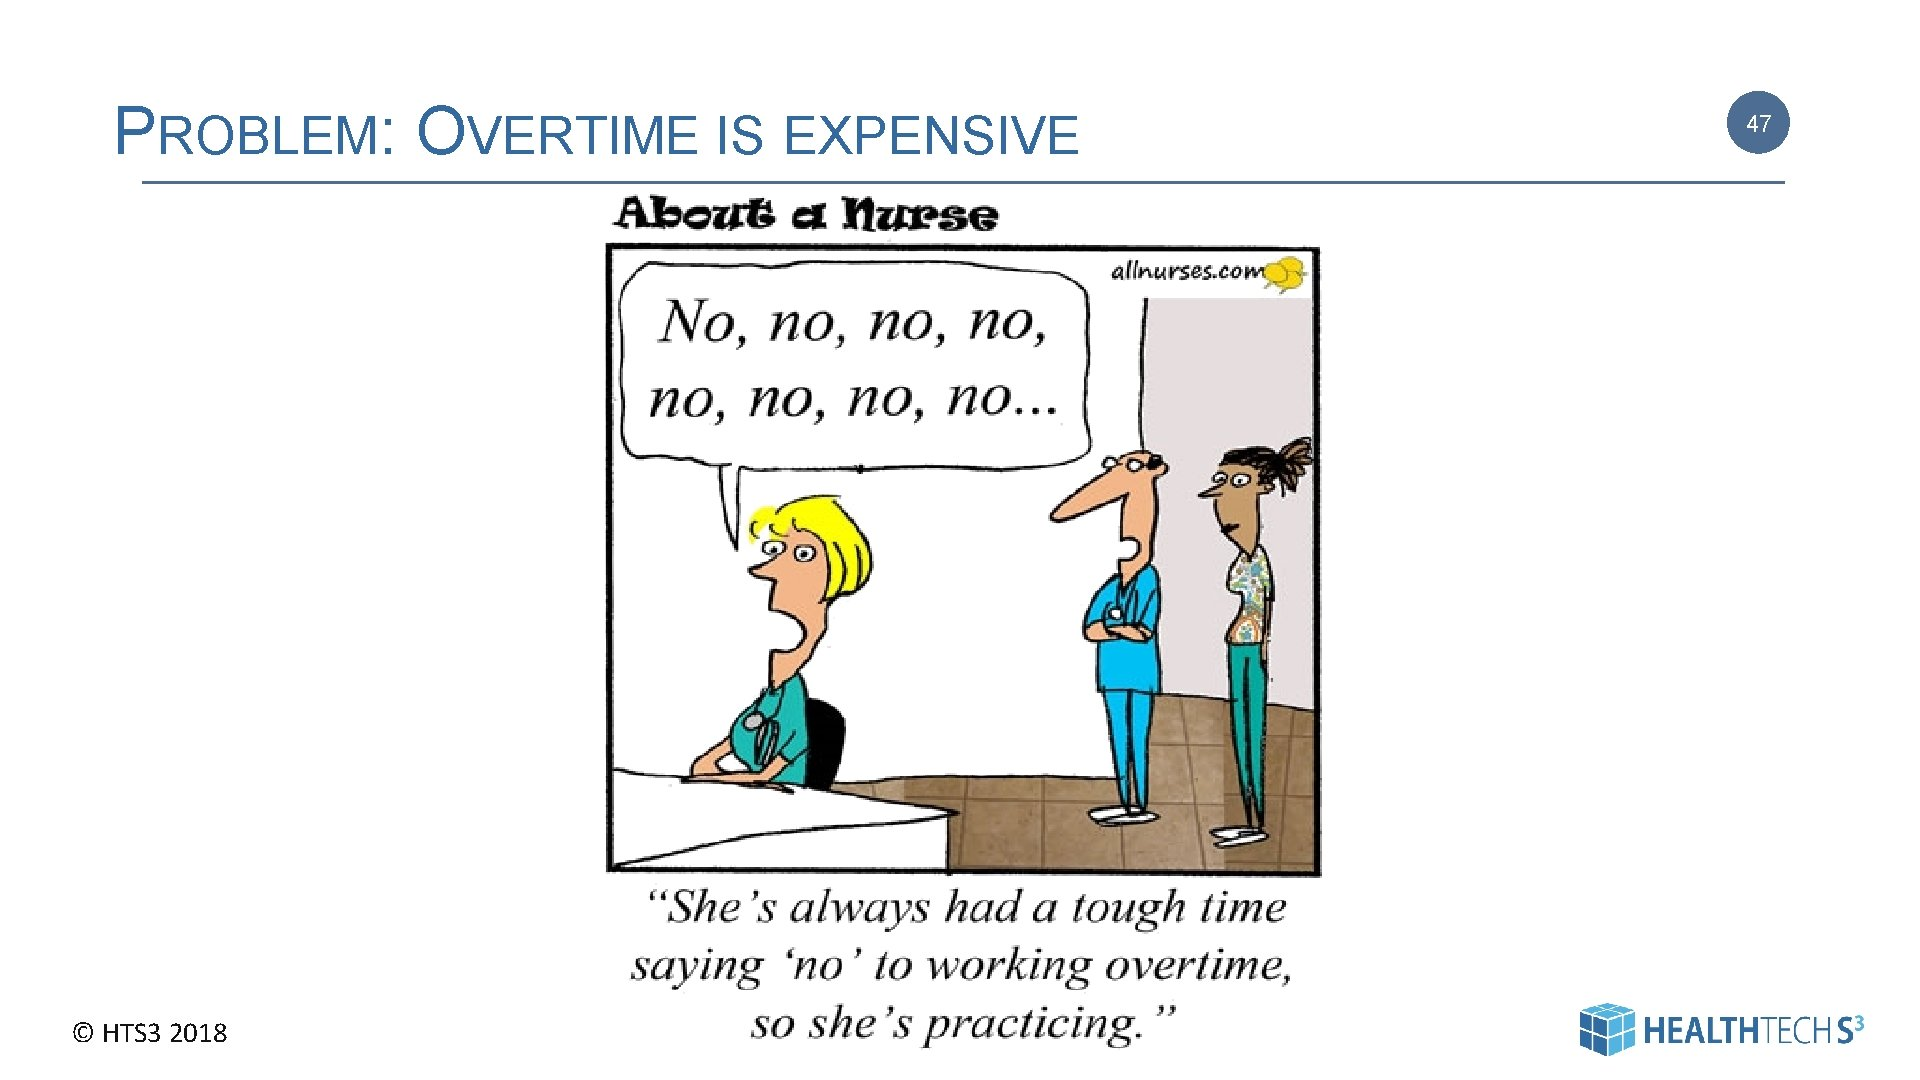 PROBLEM: OVERTIME IS EXPENSIVE © HTS 3 2018 47 | Pag e 47